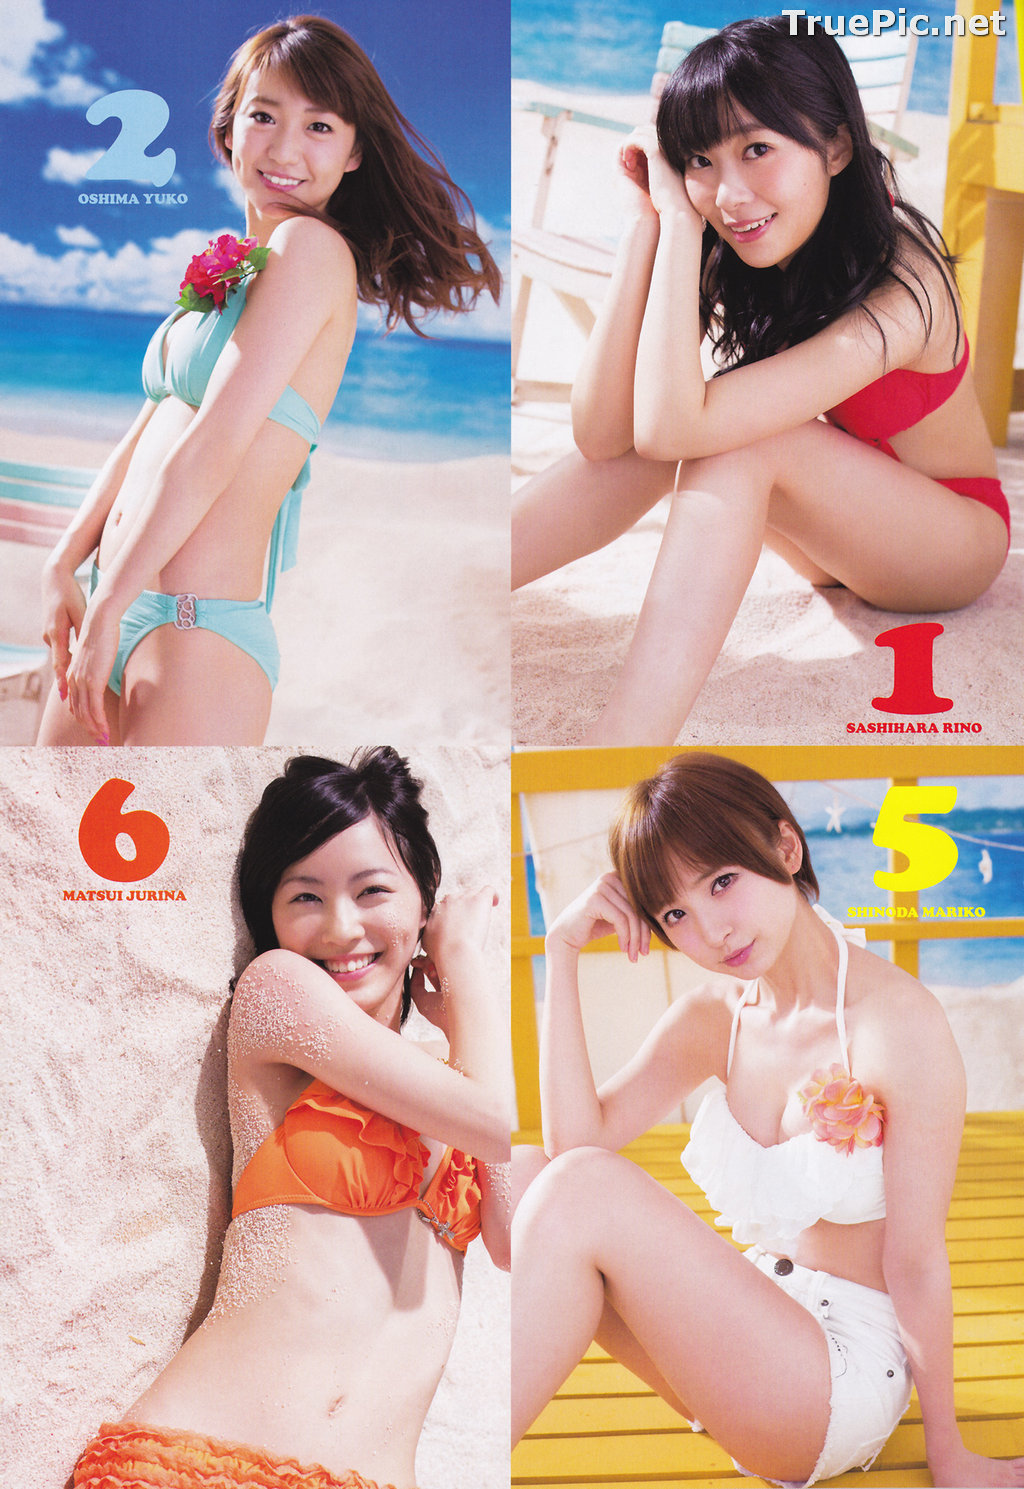 Image AKB48 General Election! Swimsuit Surprise Announcement 2013 - TruePic.net - Picture-5